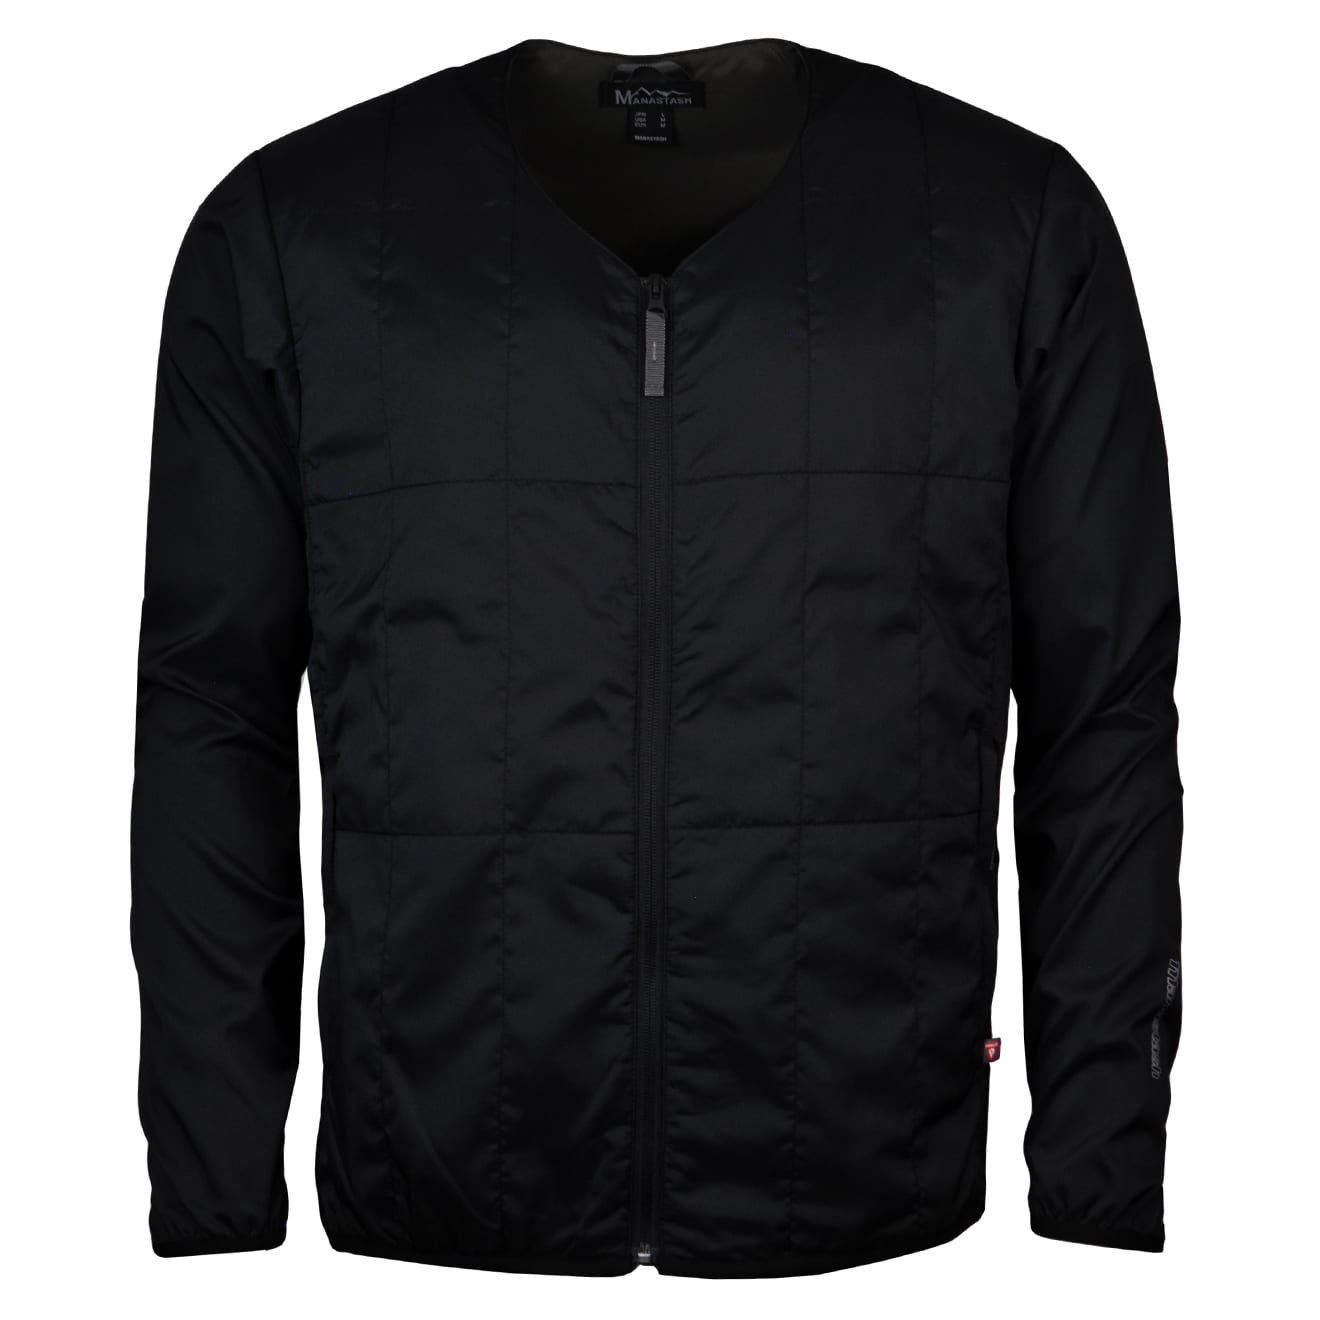 Manastash P40 flex layer jacket black